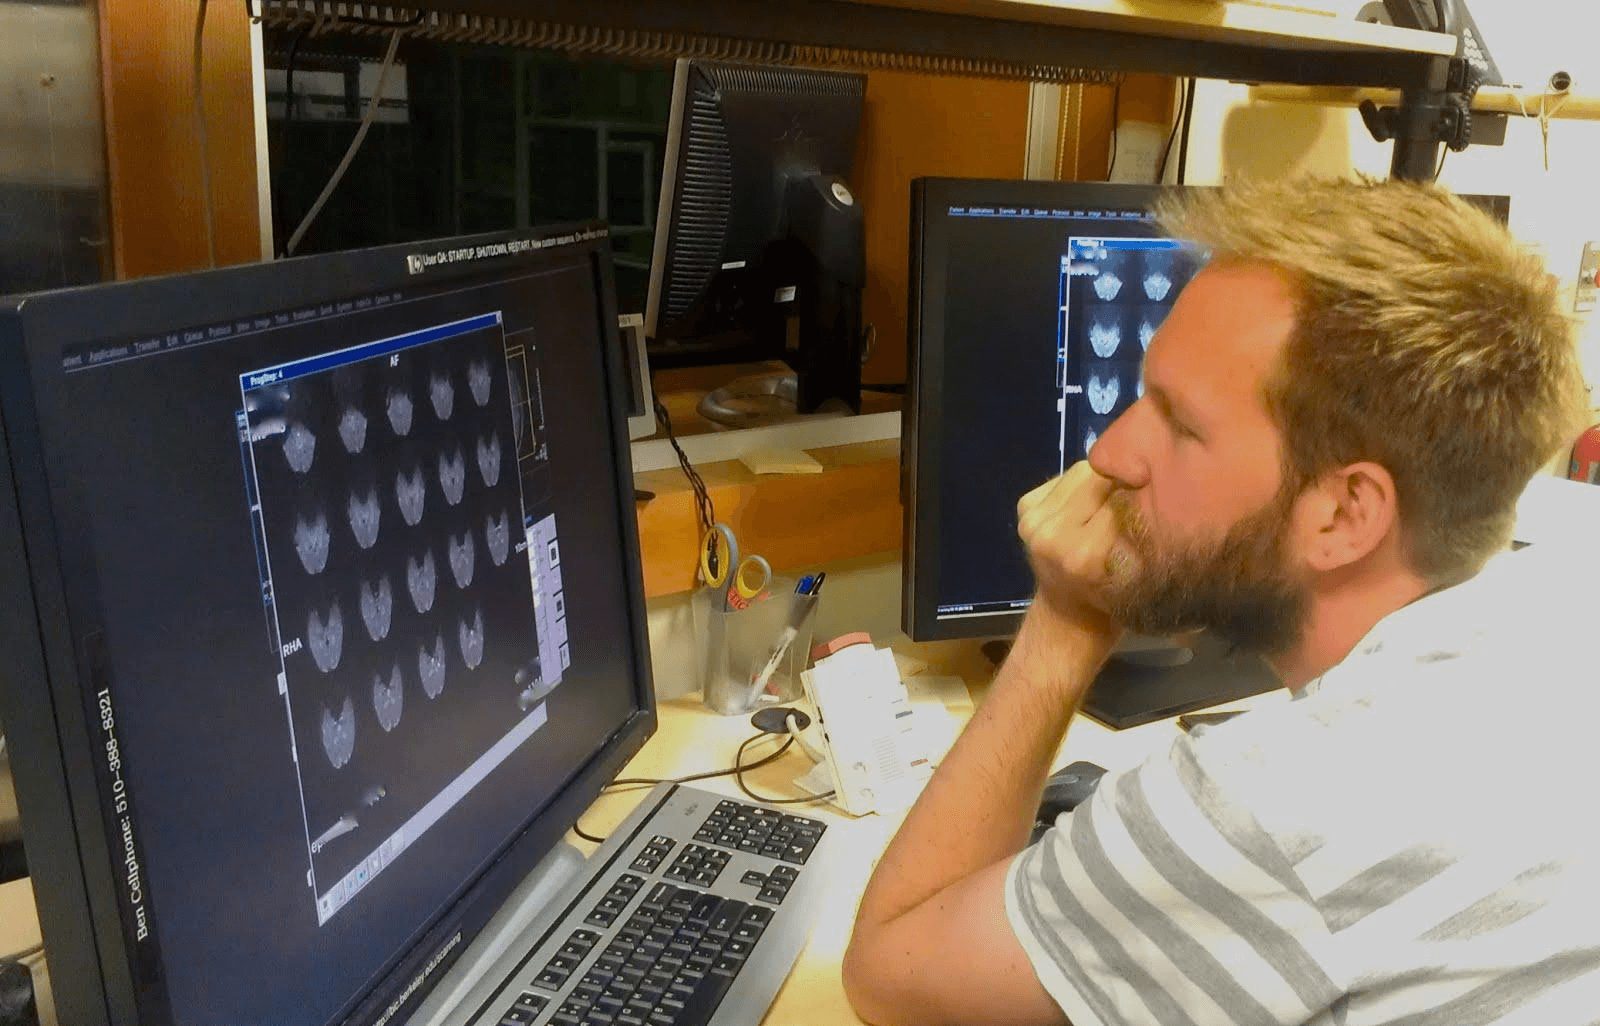 Shawn Marks, a graduate student in the Jagust lab, inspects his fMRI data collected in the BIC.